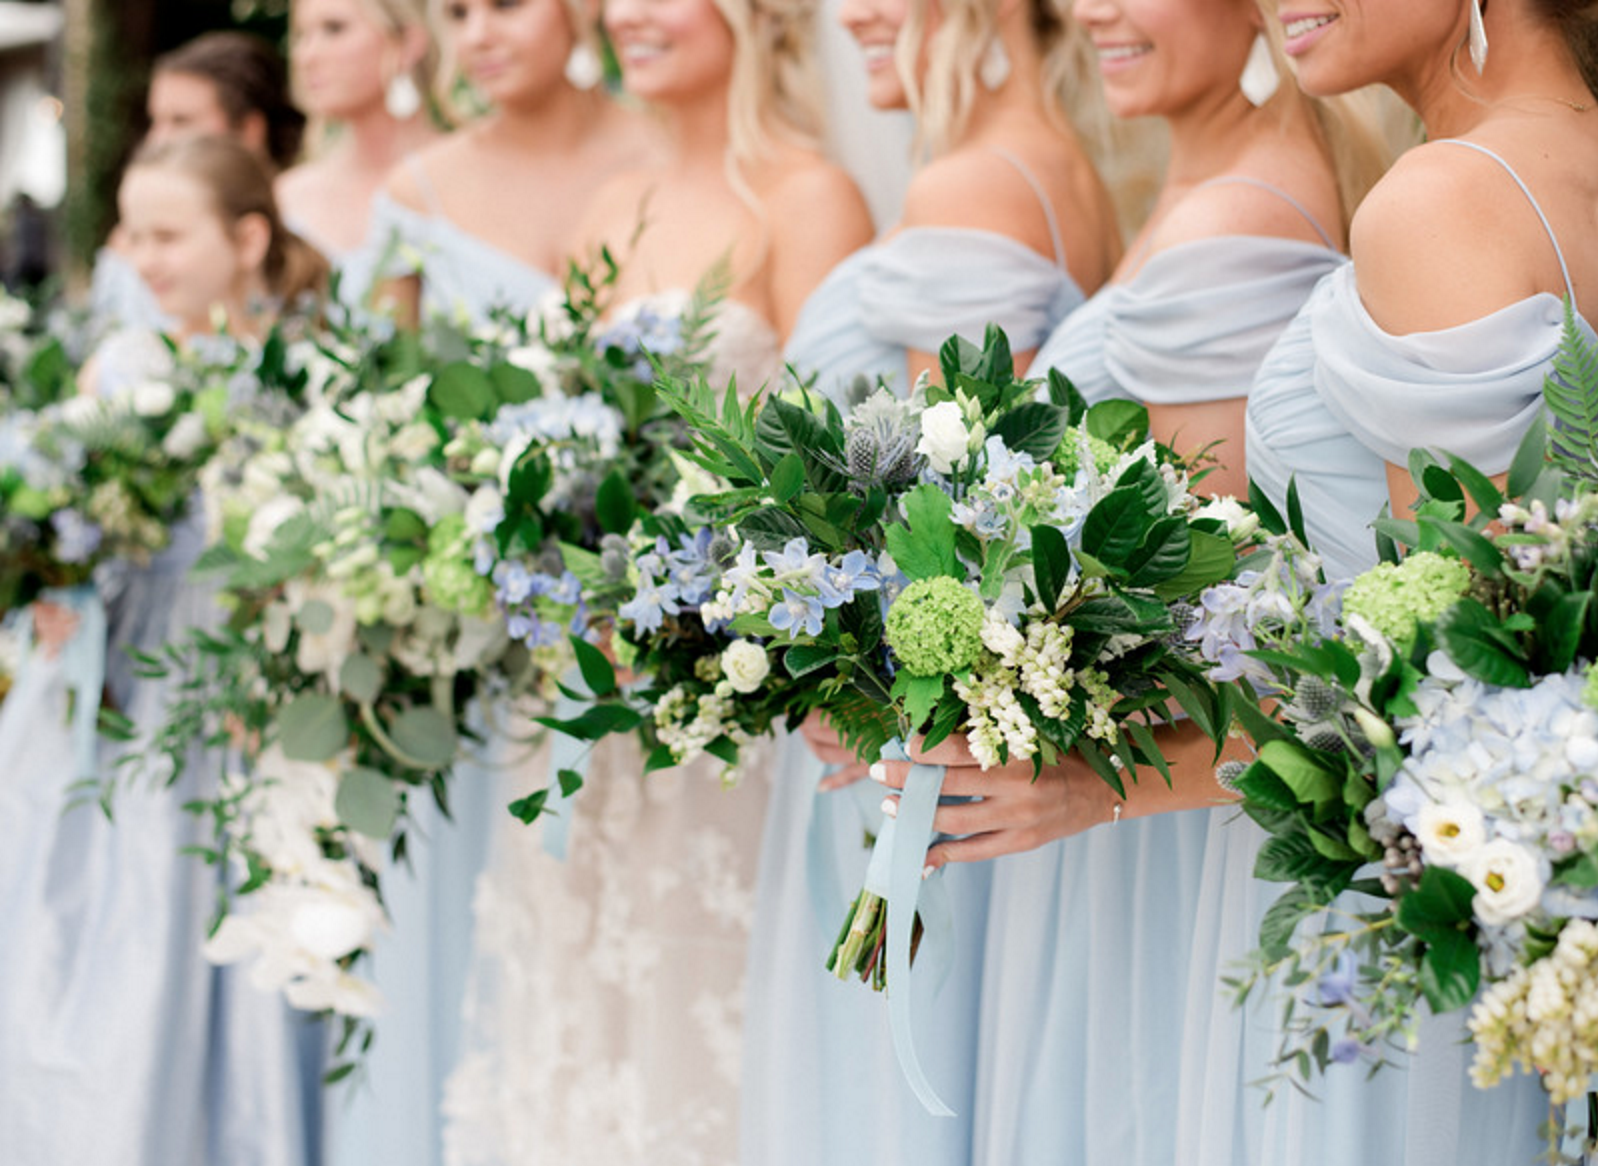 Ice Blue Bridesmaids Dresses | Spring Texas Vineyard Wedding